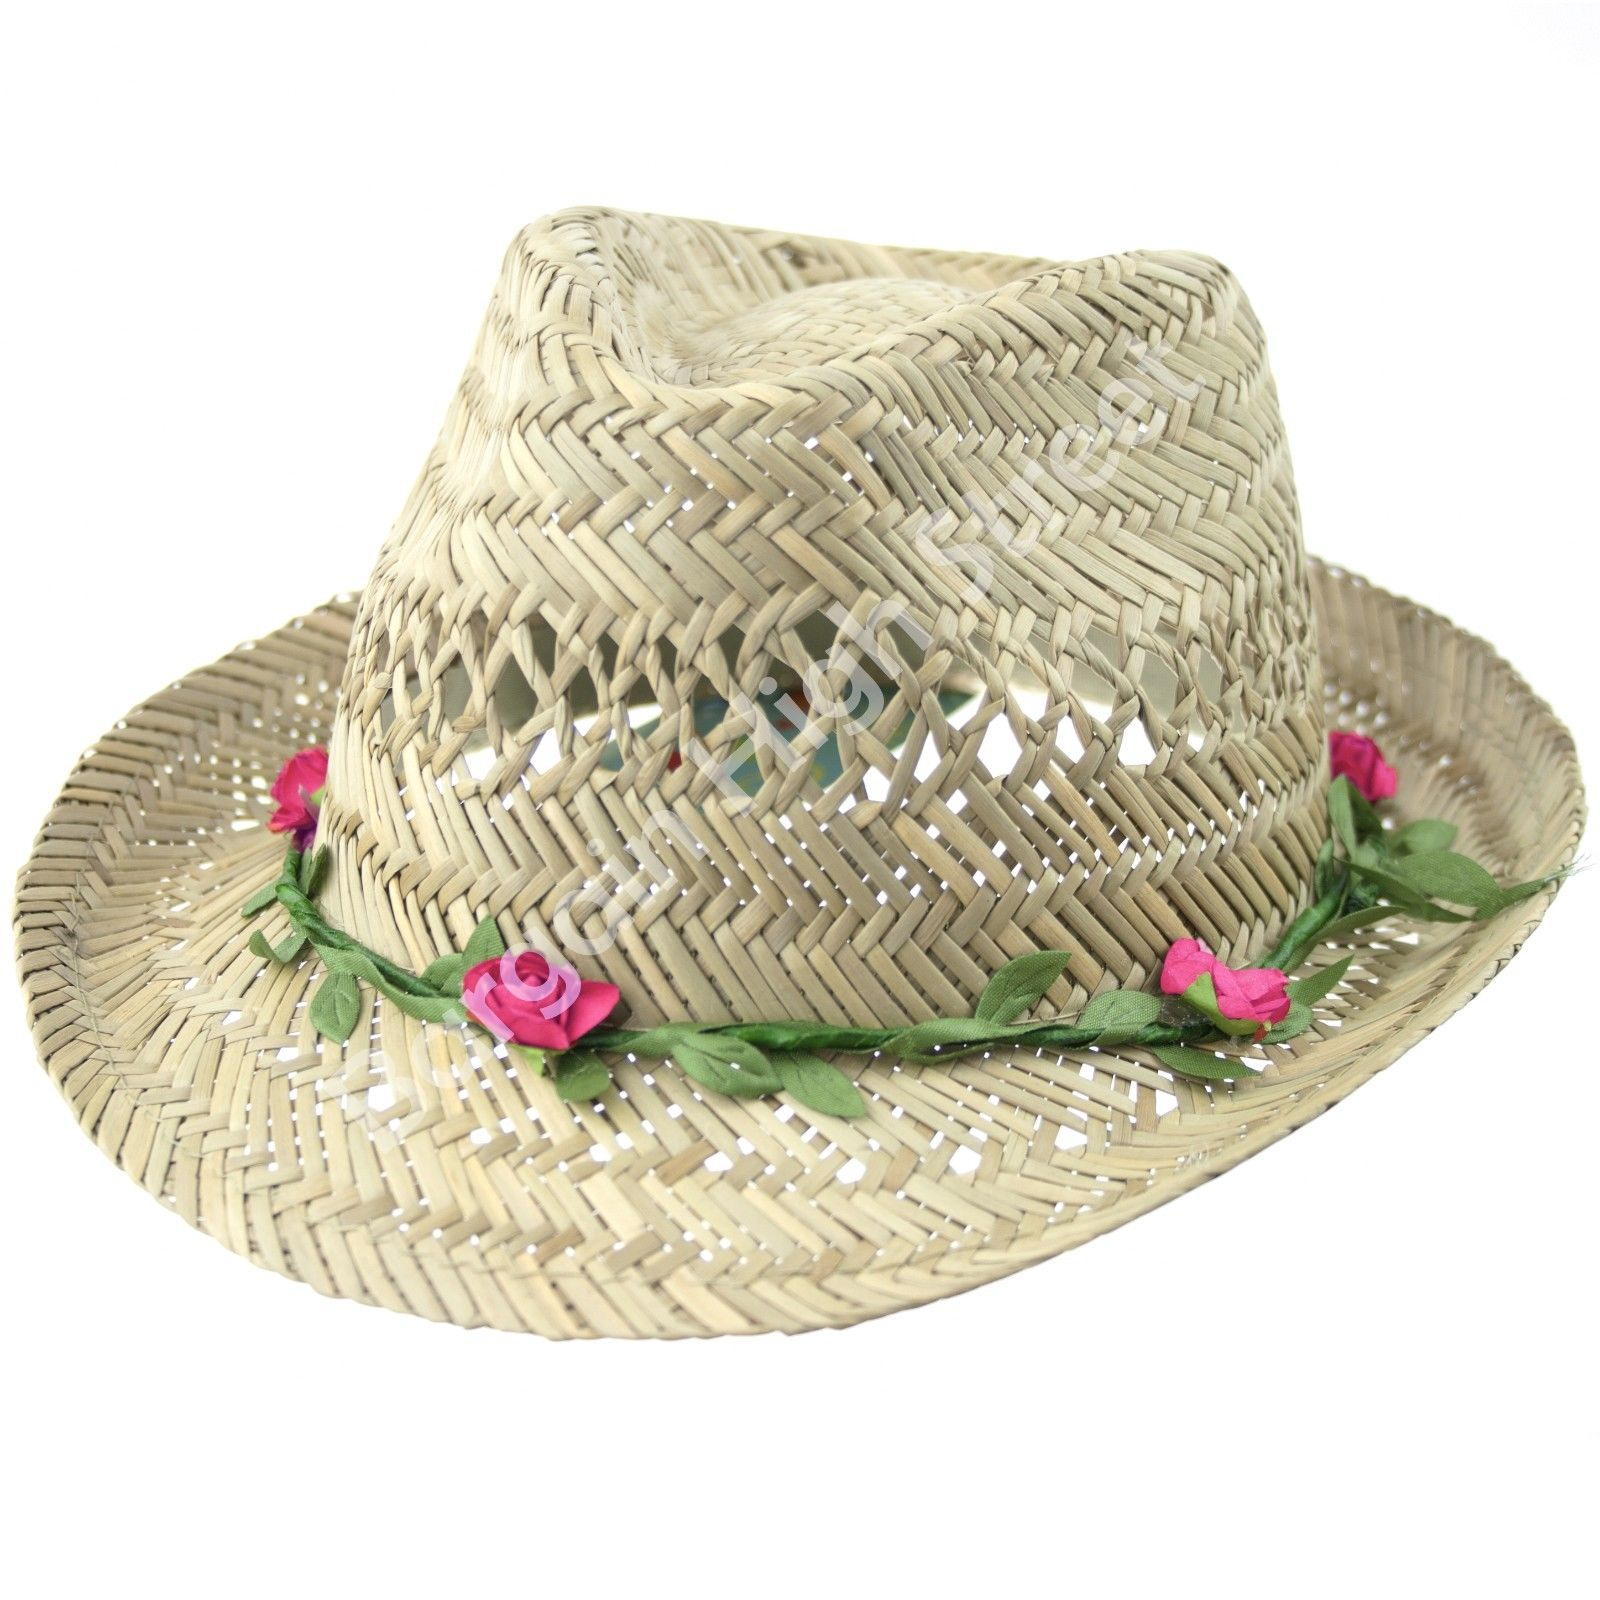 Hats for Girls: Sun Hats, Beach Hats, Fedoras & Caps. If you're looking for a hat that is more suitable for the beach, bucket hats and straw hats are always good options when it comes to spending time in the sun. Both a bucket hat and a straw hat will provide coverage from the sun for your face and neck and can be paired with any beach.